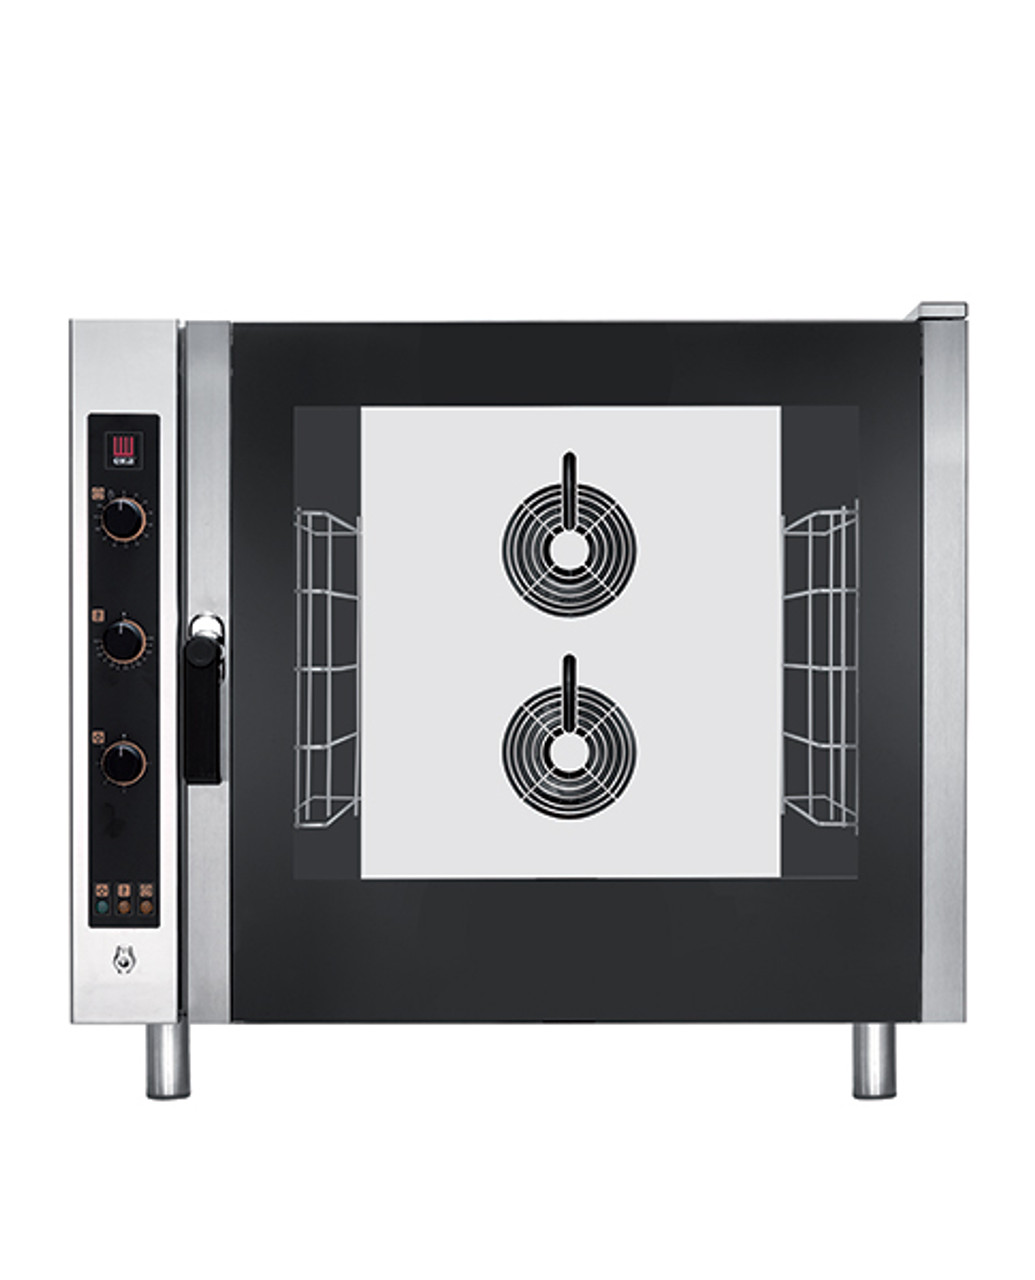 "Eka Evolution 6-tray full-size (18"" x 26"") electric combi-oven with electro-mechanical controls.  Holds 6 full-size pans or up to 12 half-size trays. 6 full-size grids, electrical cord, components necessary to connect to water supply, and standard drain components included."